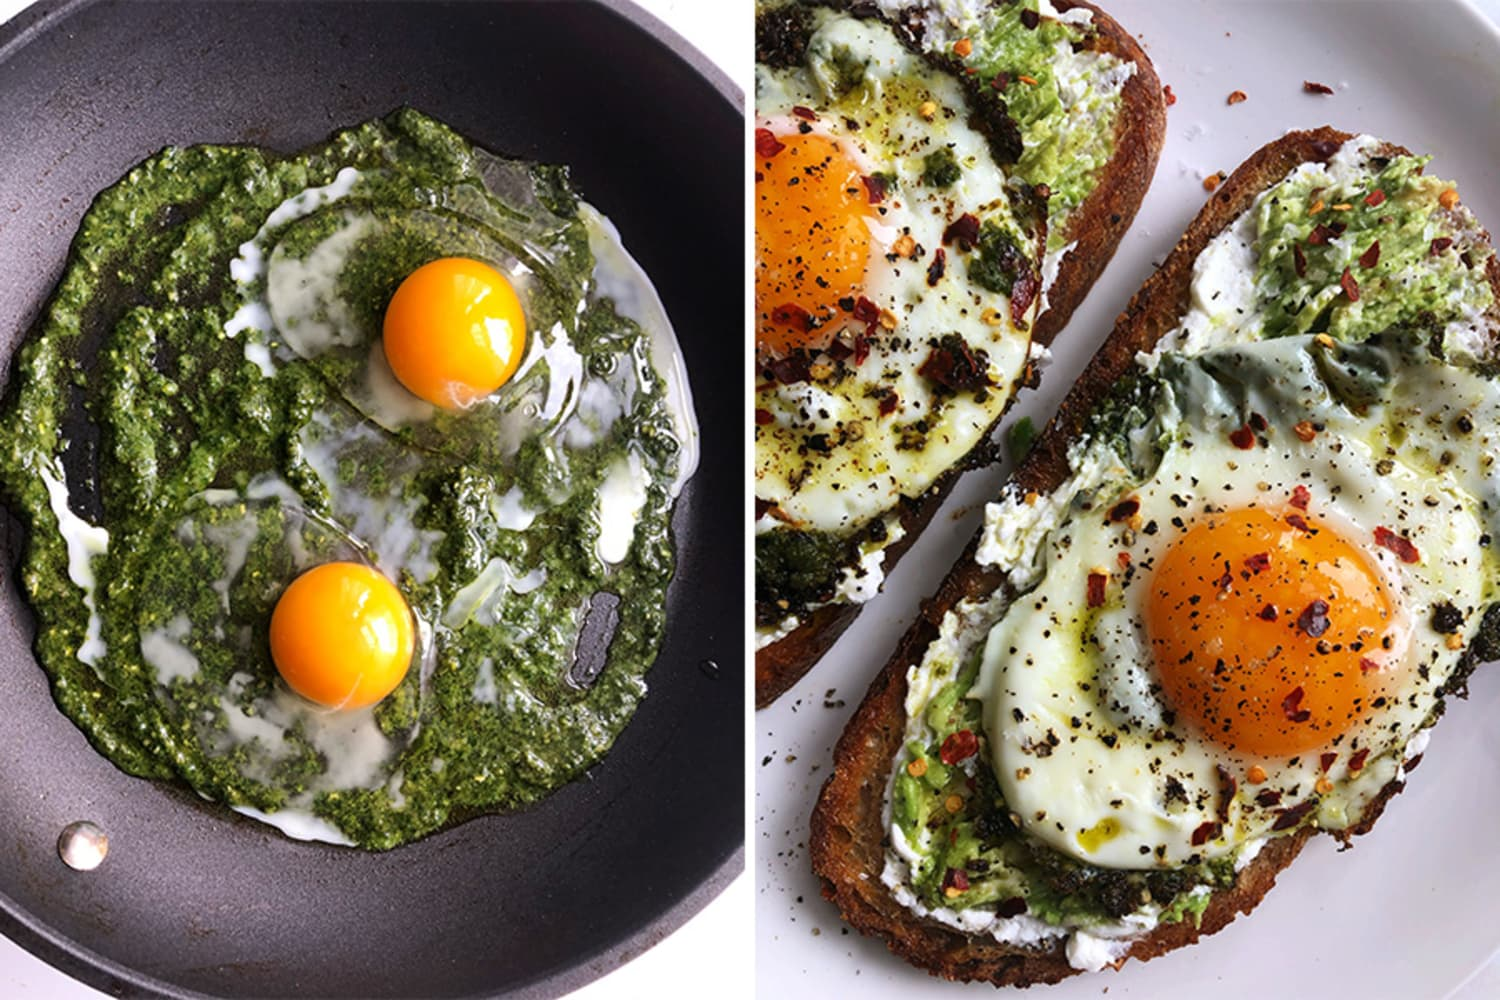 I Tried the Pesto Eggs TikTok Is Obsessed with, and I'm Hooked | Kitchn